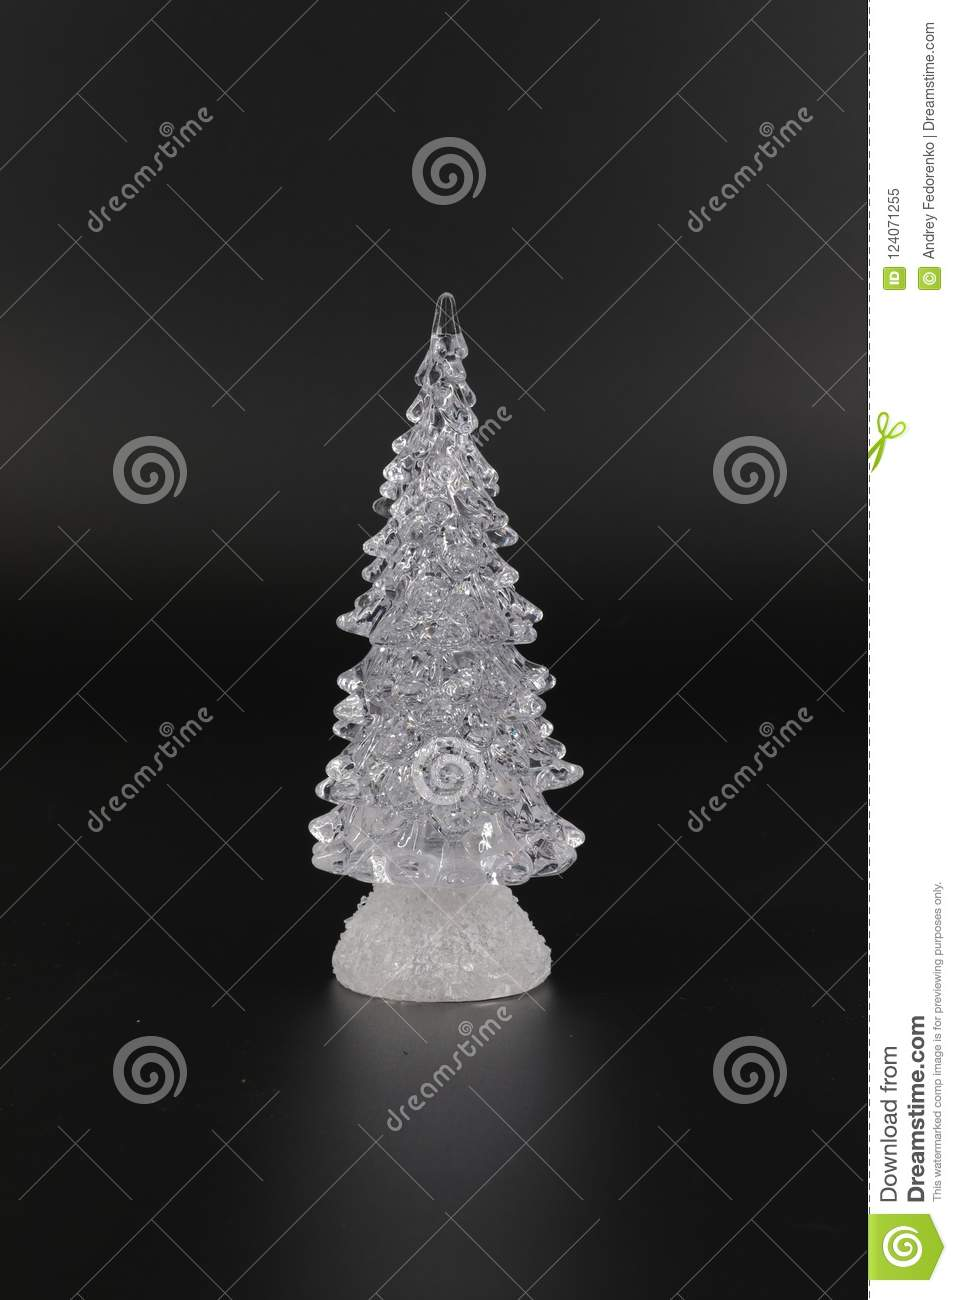 Stylized Christmas Tree Made Of Transparent Material On A Dark And